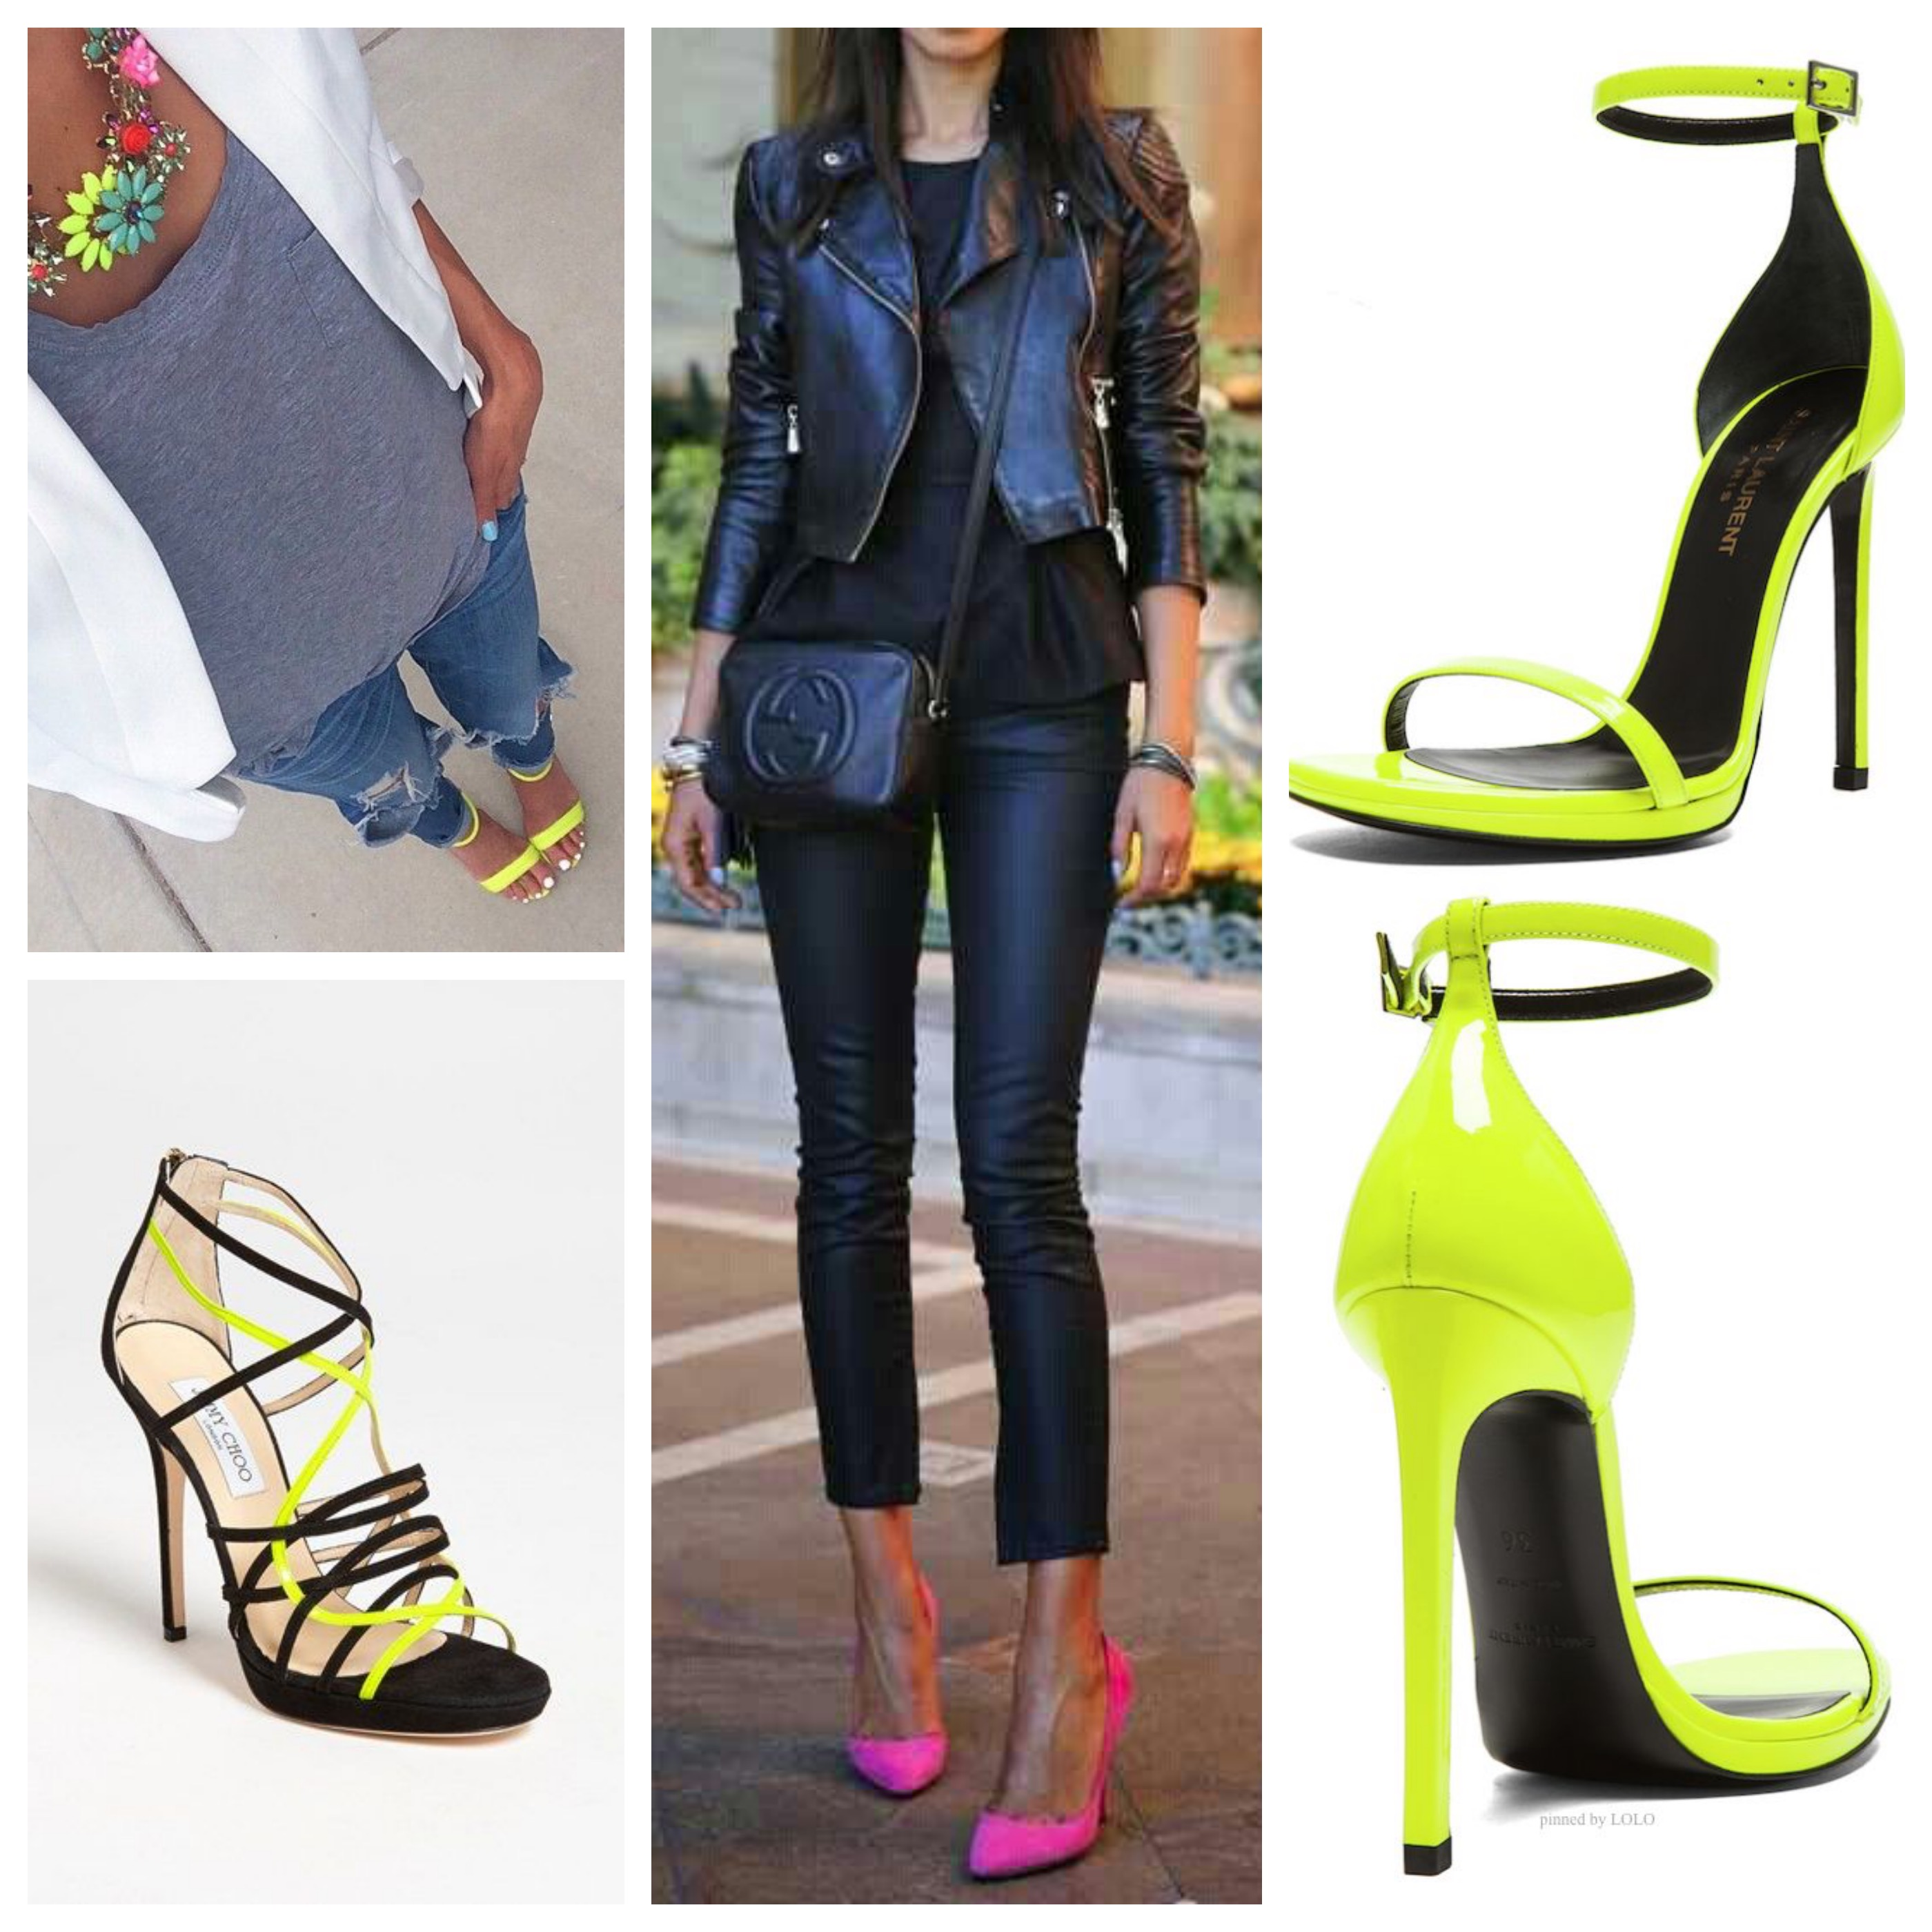 Neon Saint Laurent & Jimmy Choo Shoes